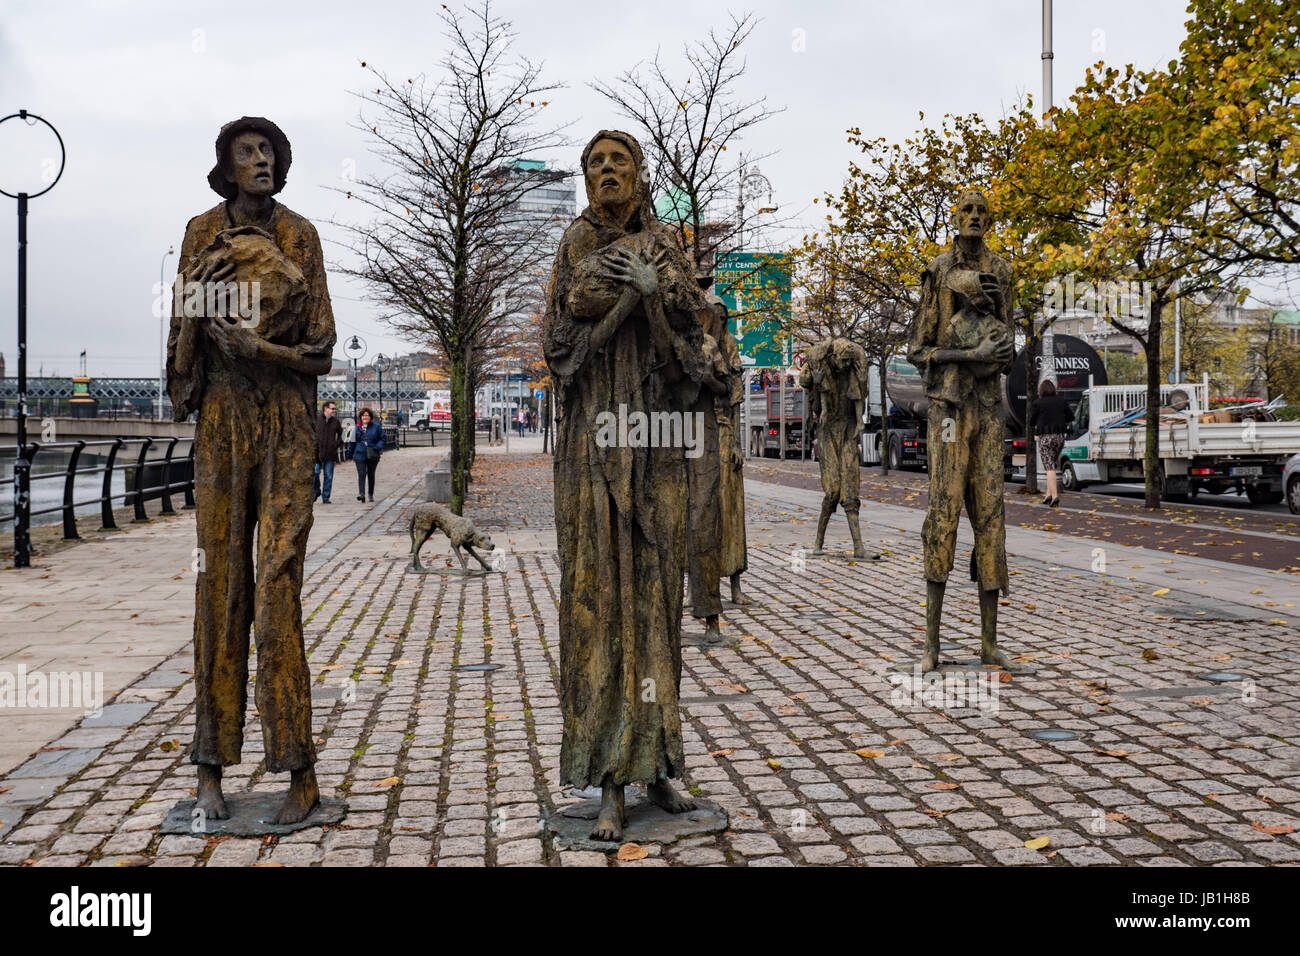 The Famine Sculptures created by Rowan Gillespie in 1997 and situated on Custom House Quay on the banks of the River - Stock Image